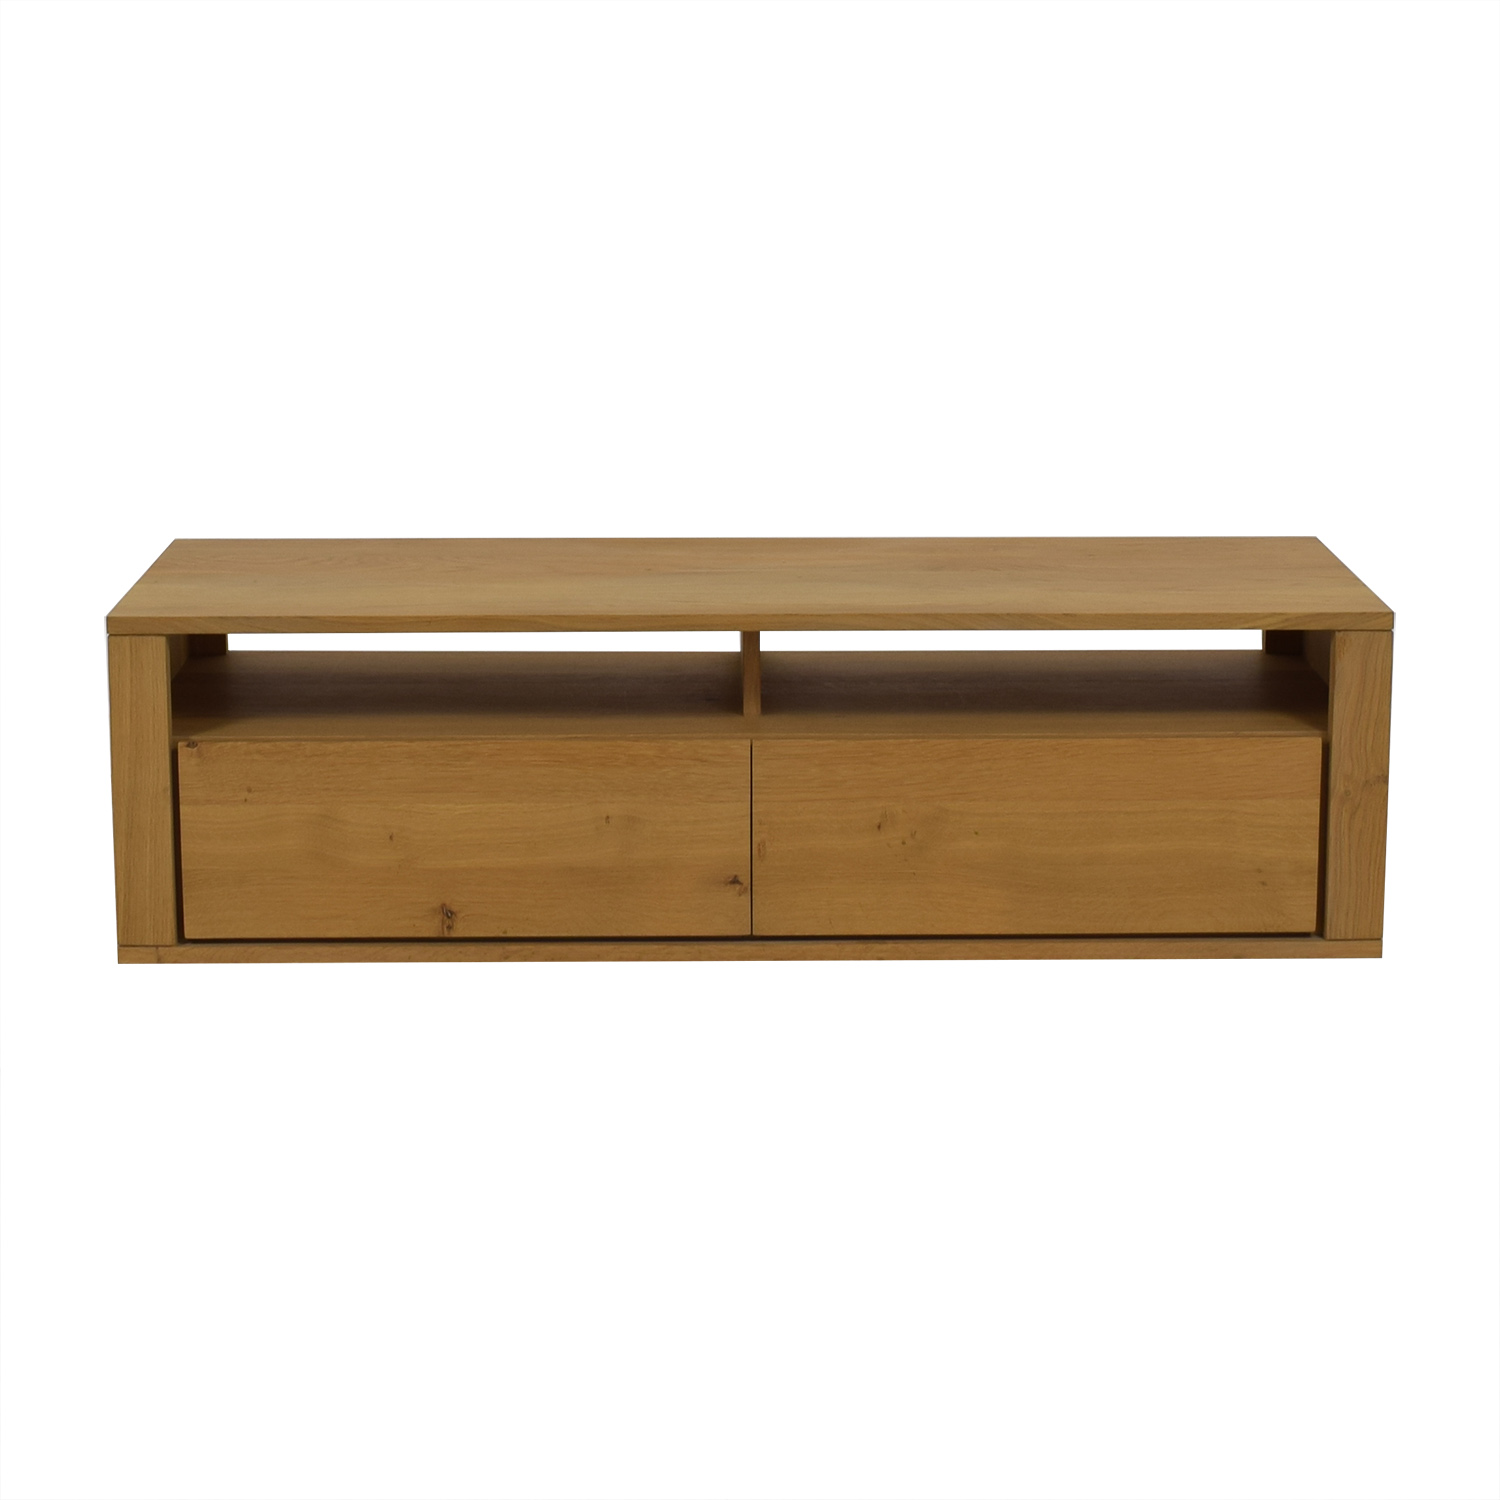 Natural Wood Two-Drawer TV Stand second hand